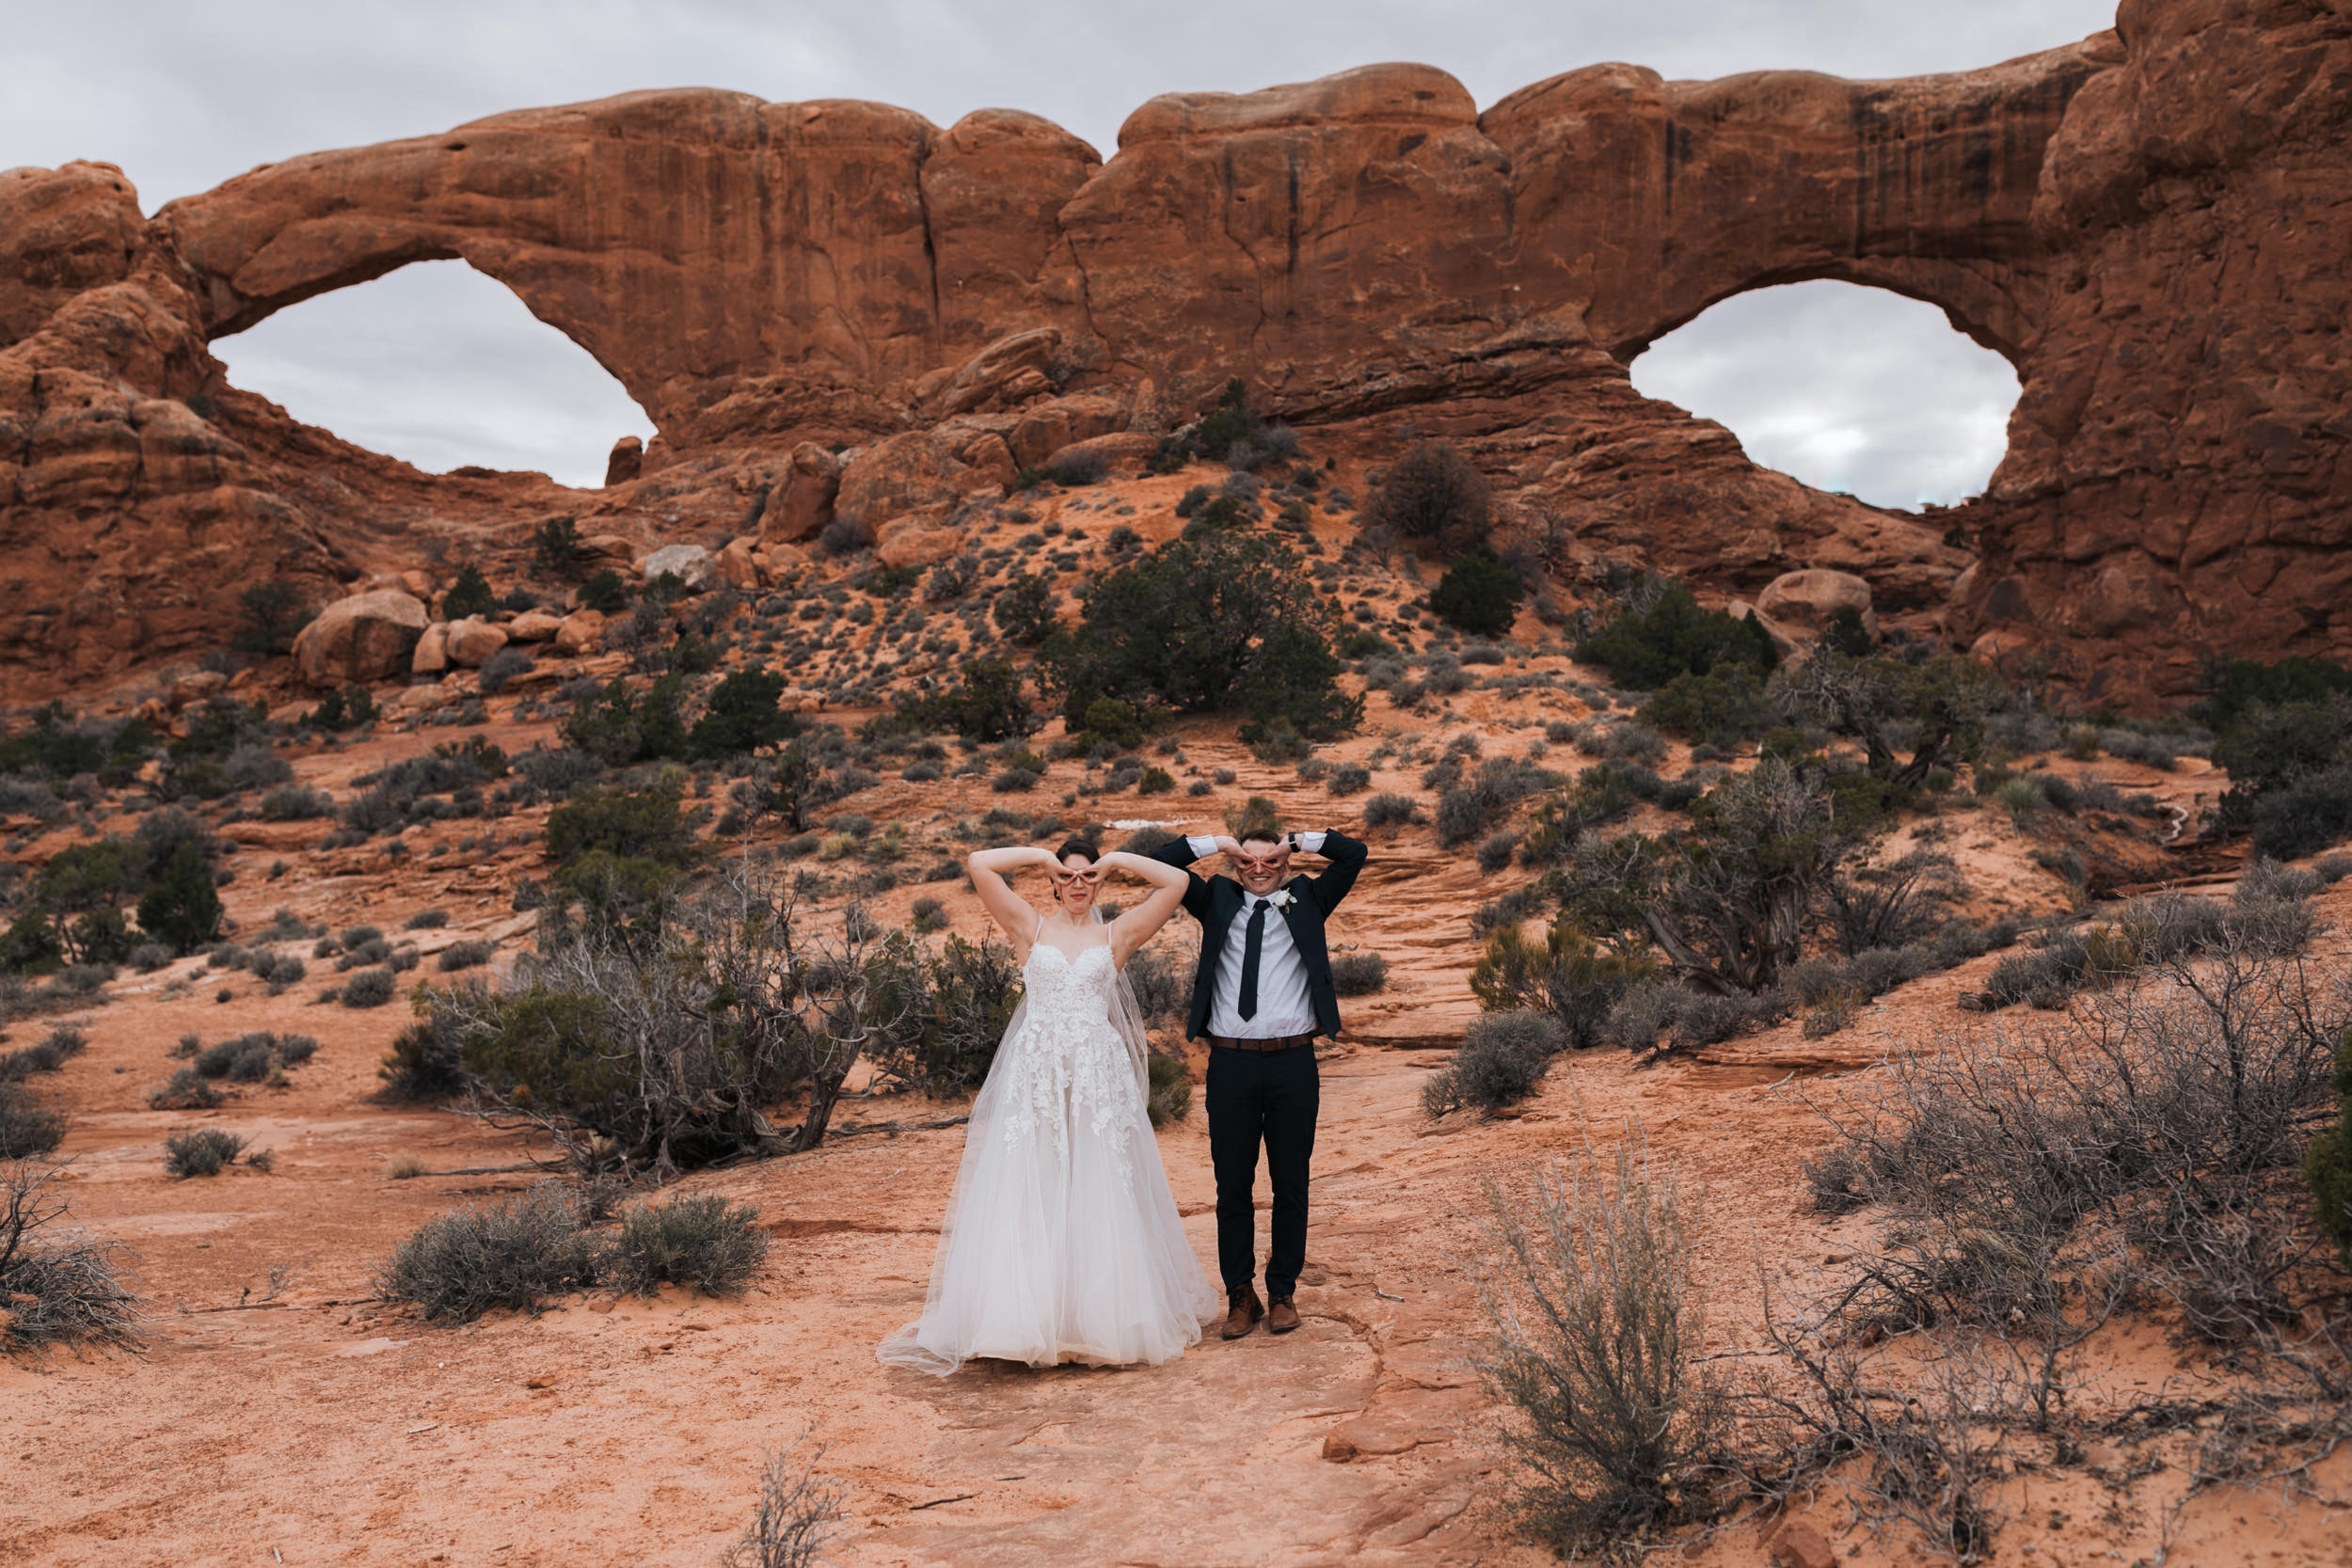 Did we mention we love the weddings we get to shoot? Our couples are so much fun - here, being goofy in front of the windows in Arches National Park.